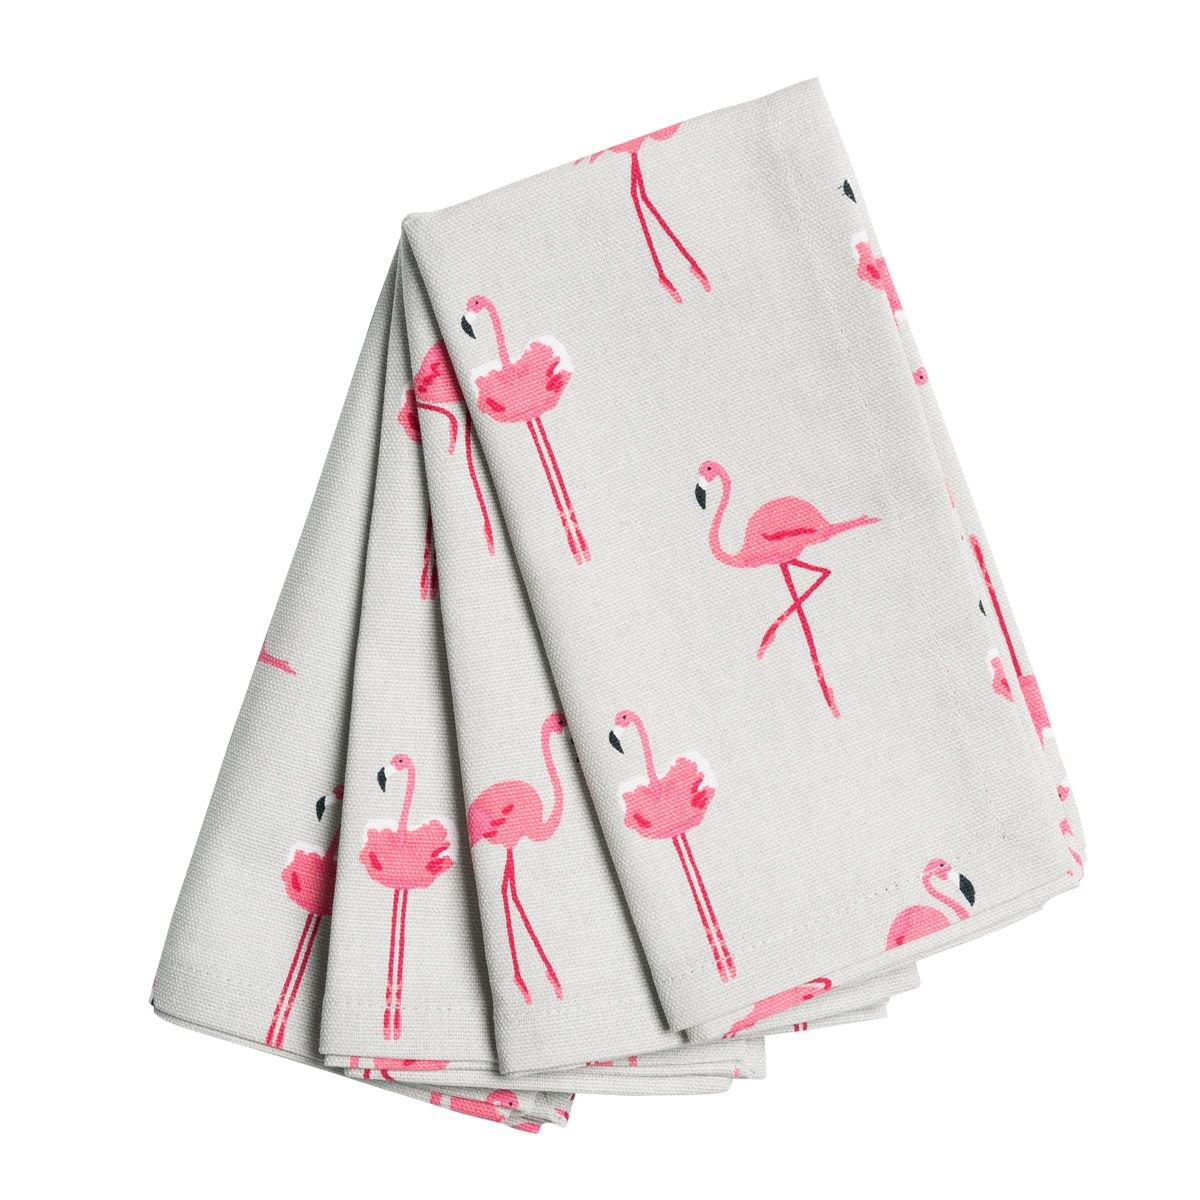 Küchentücher Flamingo A Fabulous Set Of Four Napkins Covered In Our Fun Pink Flamingos